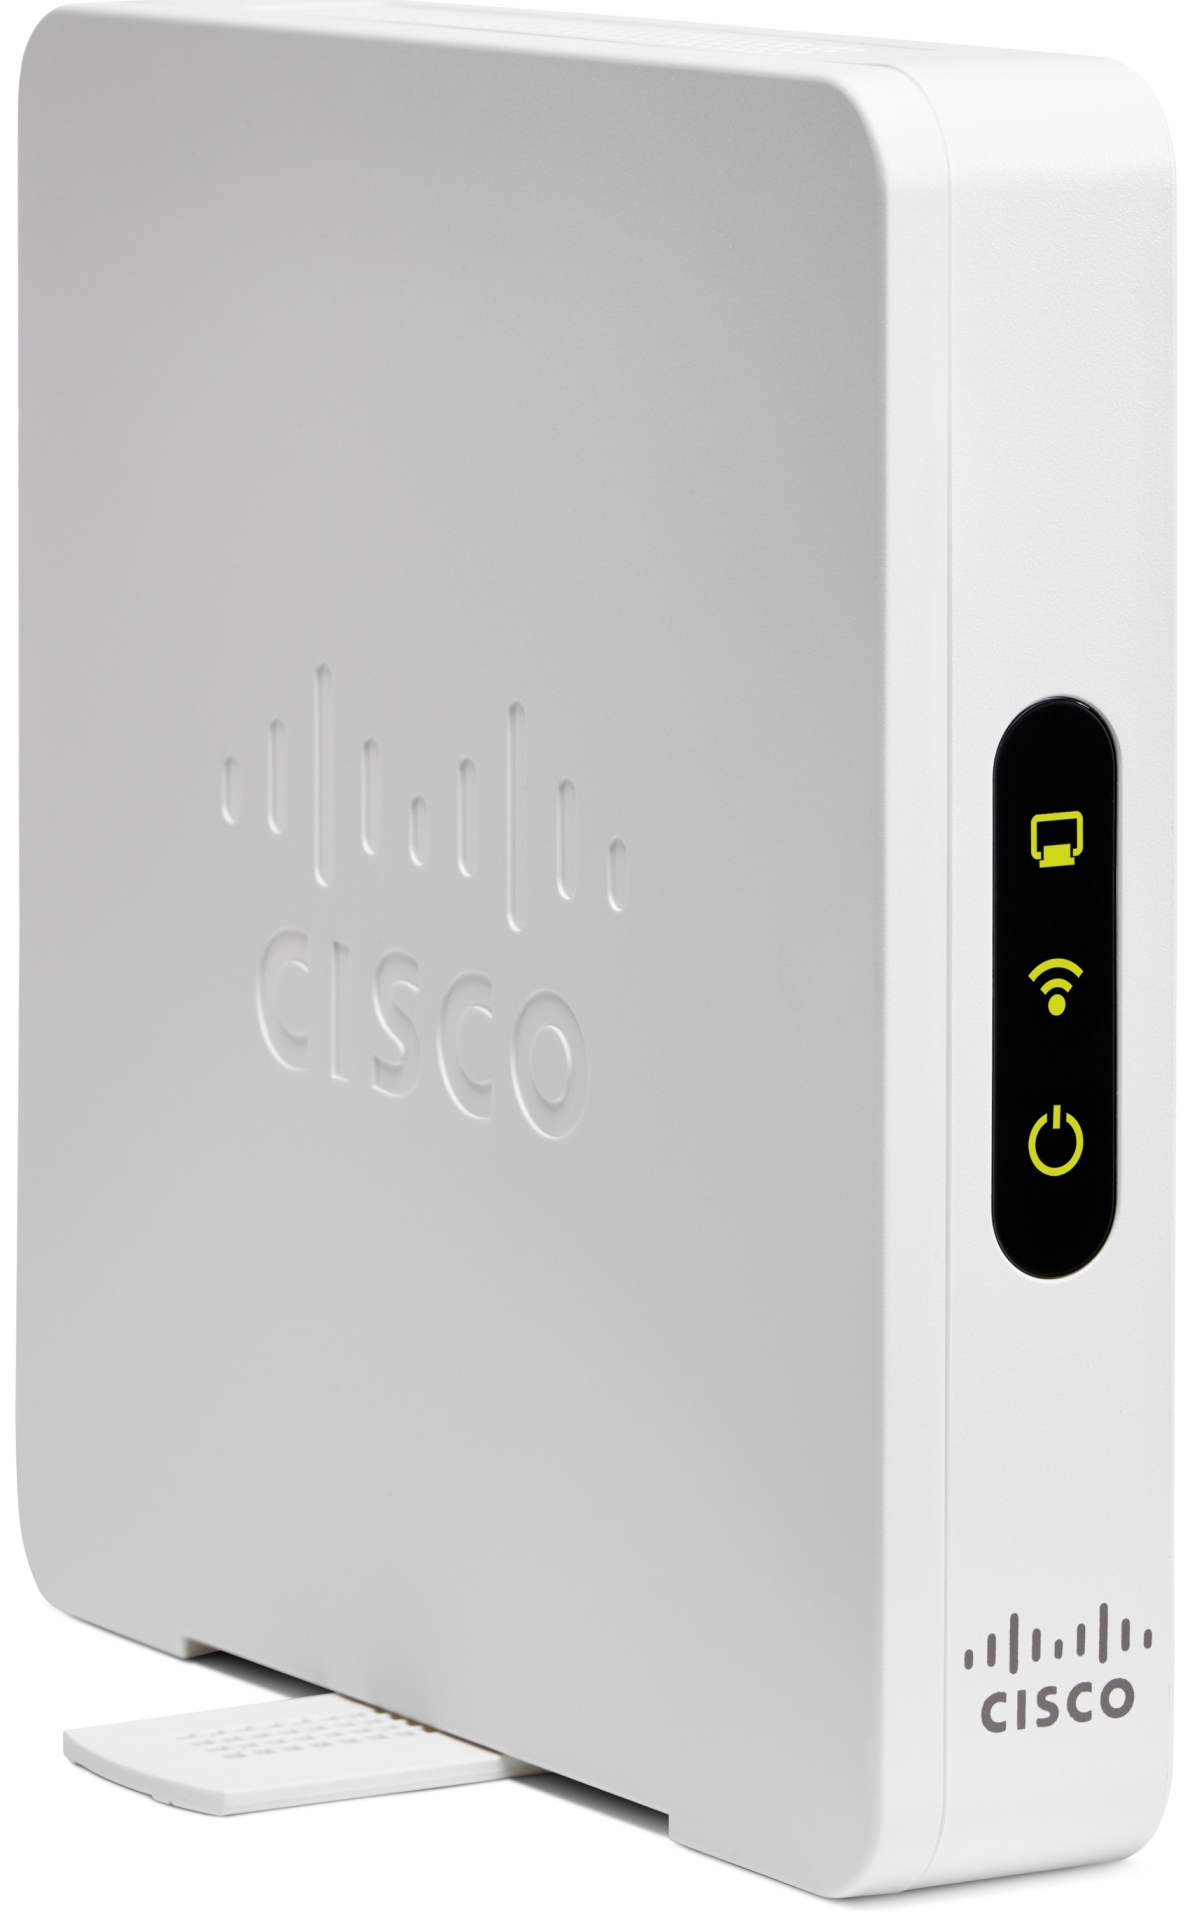 Cisco Wifi AP Dual Radio 802.11n, WAP131-E-K9-EU